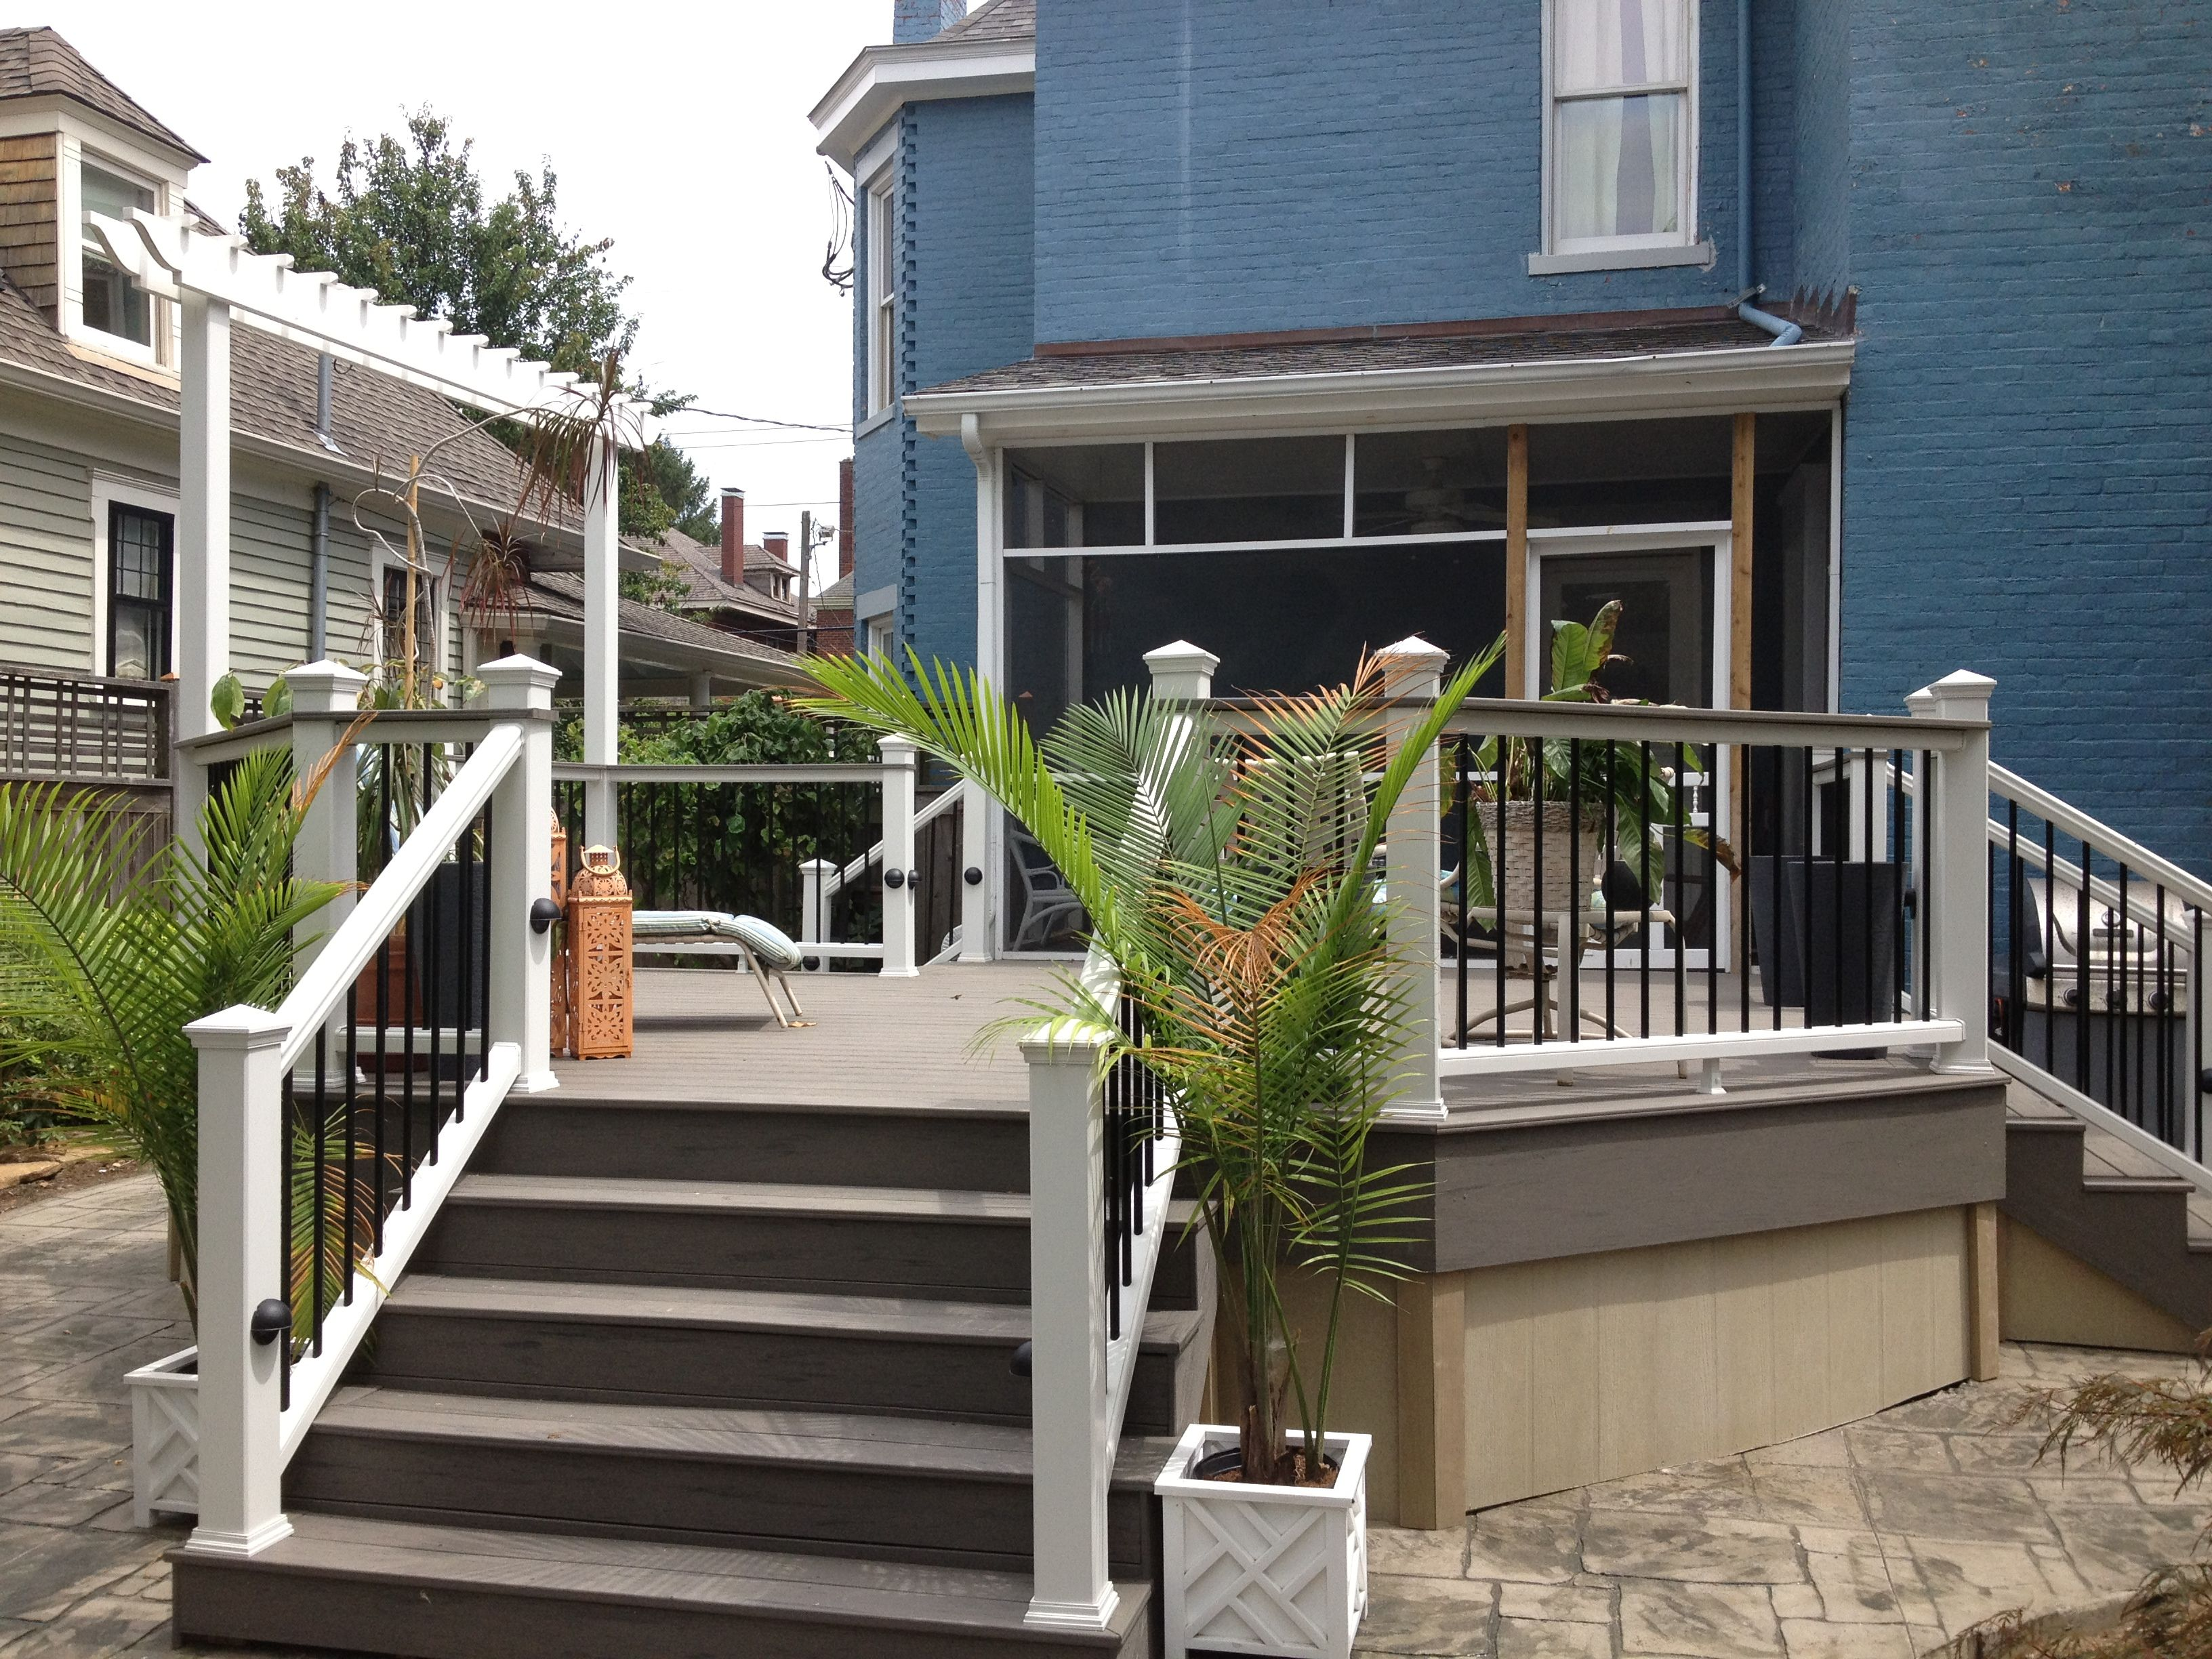 Terrain Decking And Stairs With A Transcends Railing With Black